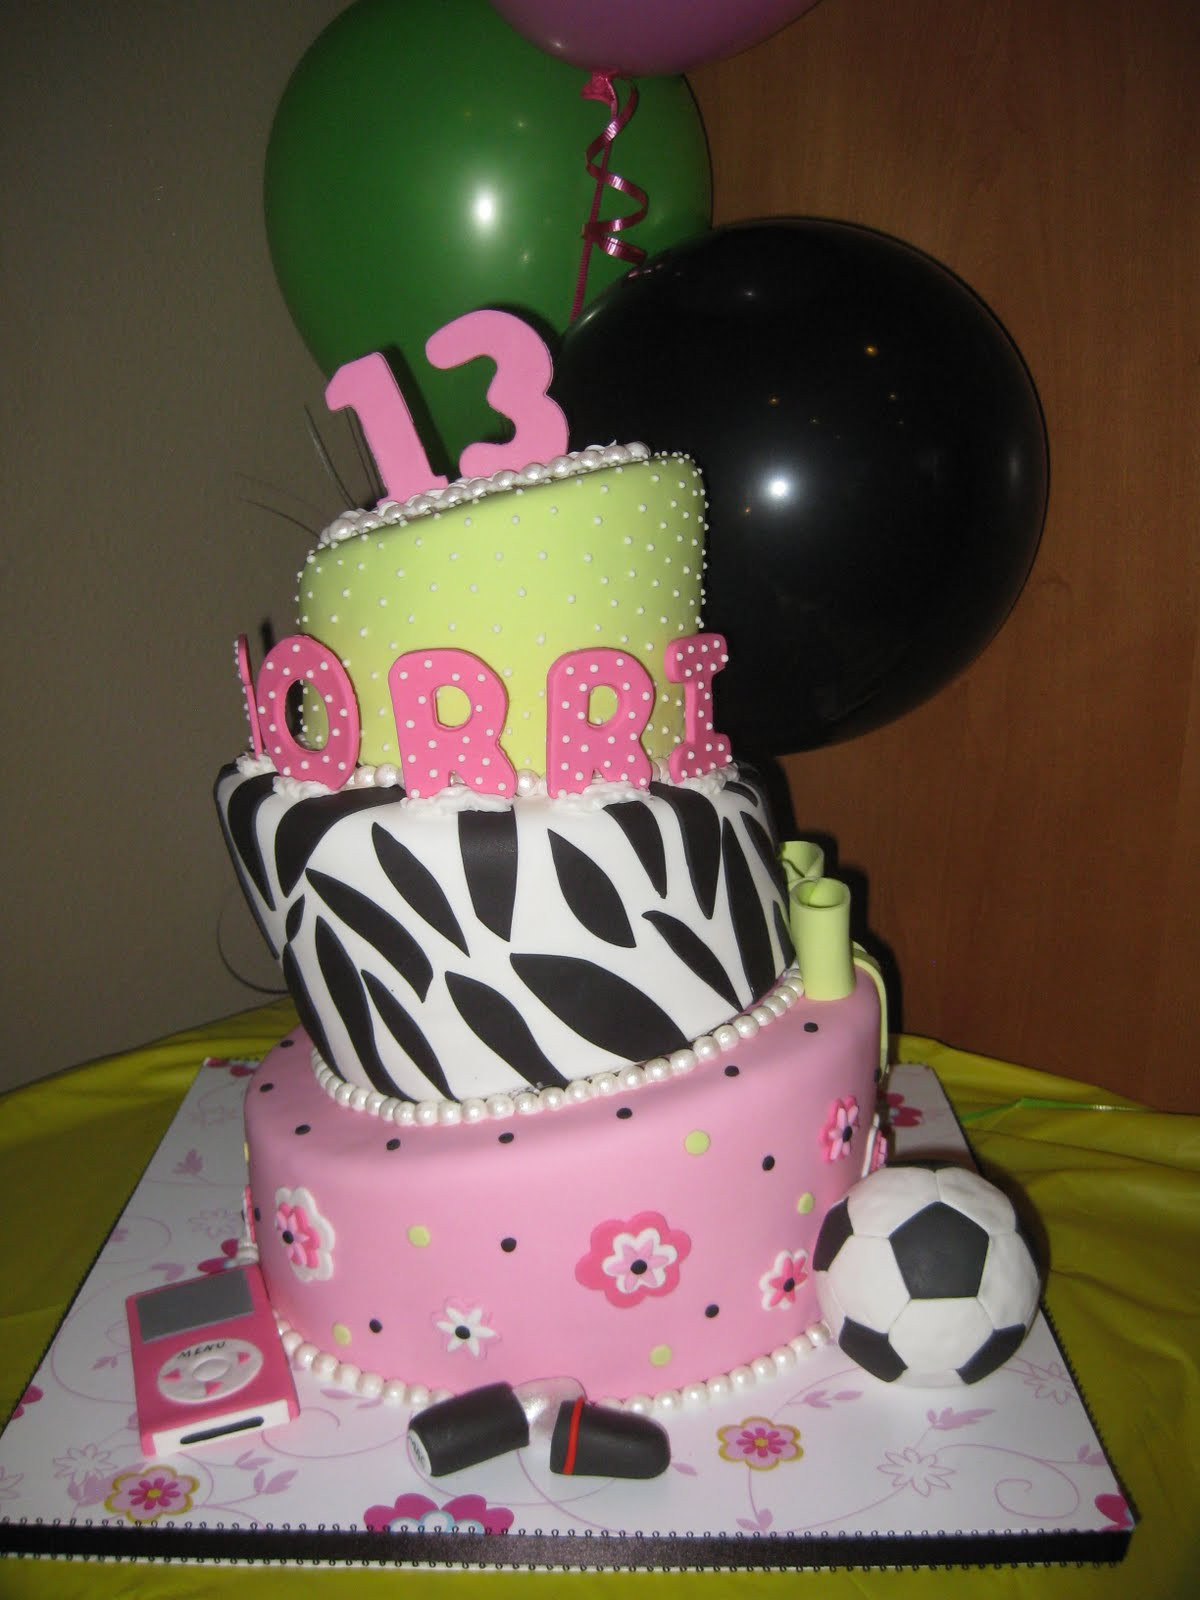 Best ideas about 13 Year Old Girl Birthday Cake . Save or Pin Sugar Chef 13TH BIRTHDAY CAKE Now.